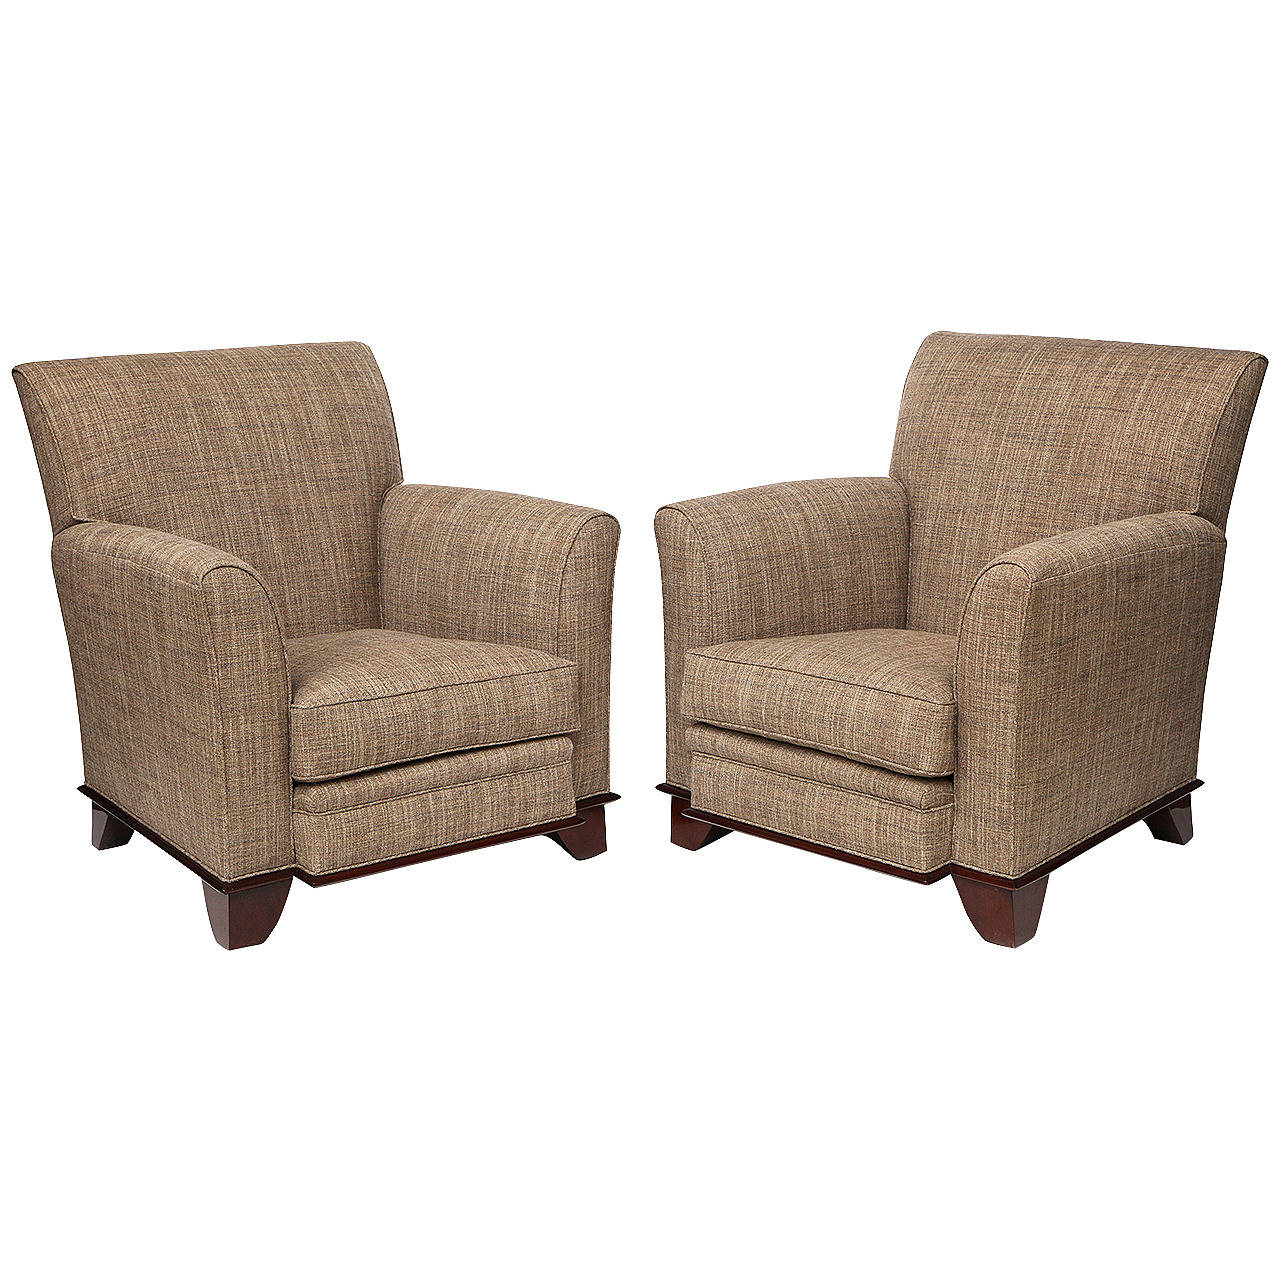 Pair of art deco club chairs france c 1930 for sale at for Decoration maison 1930